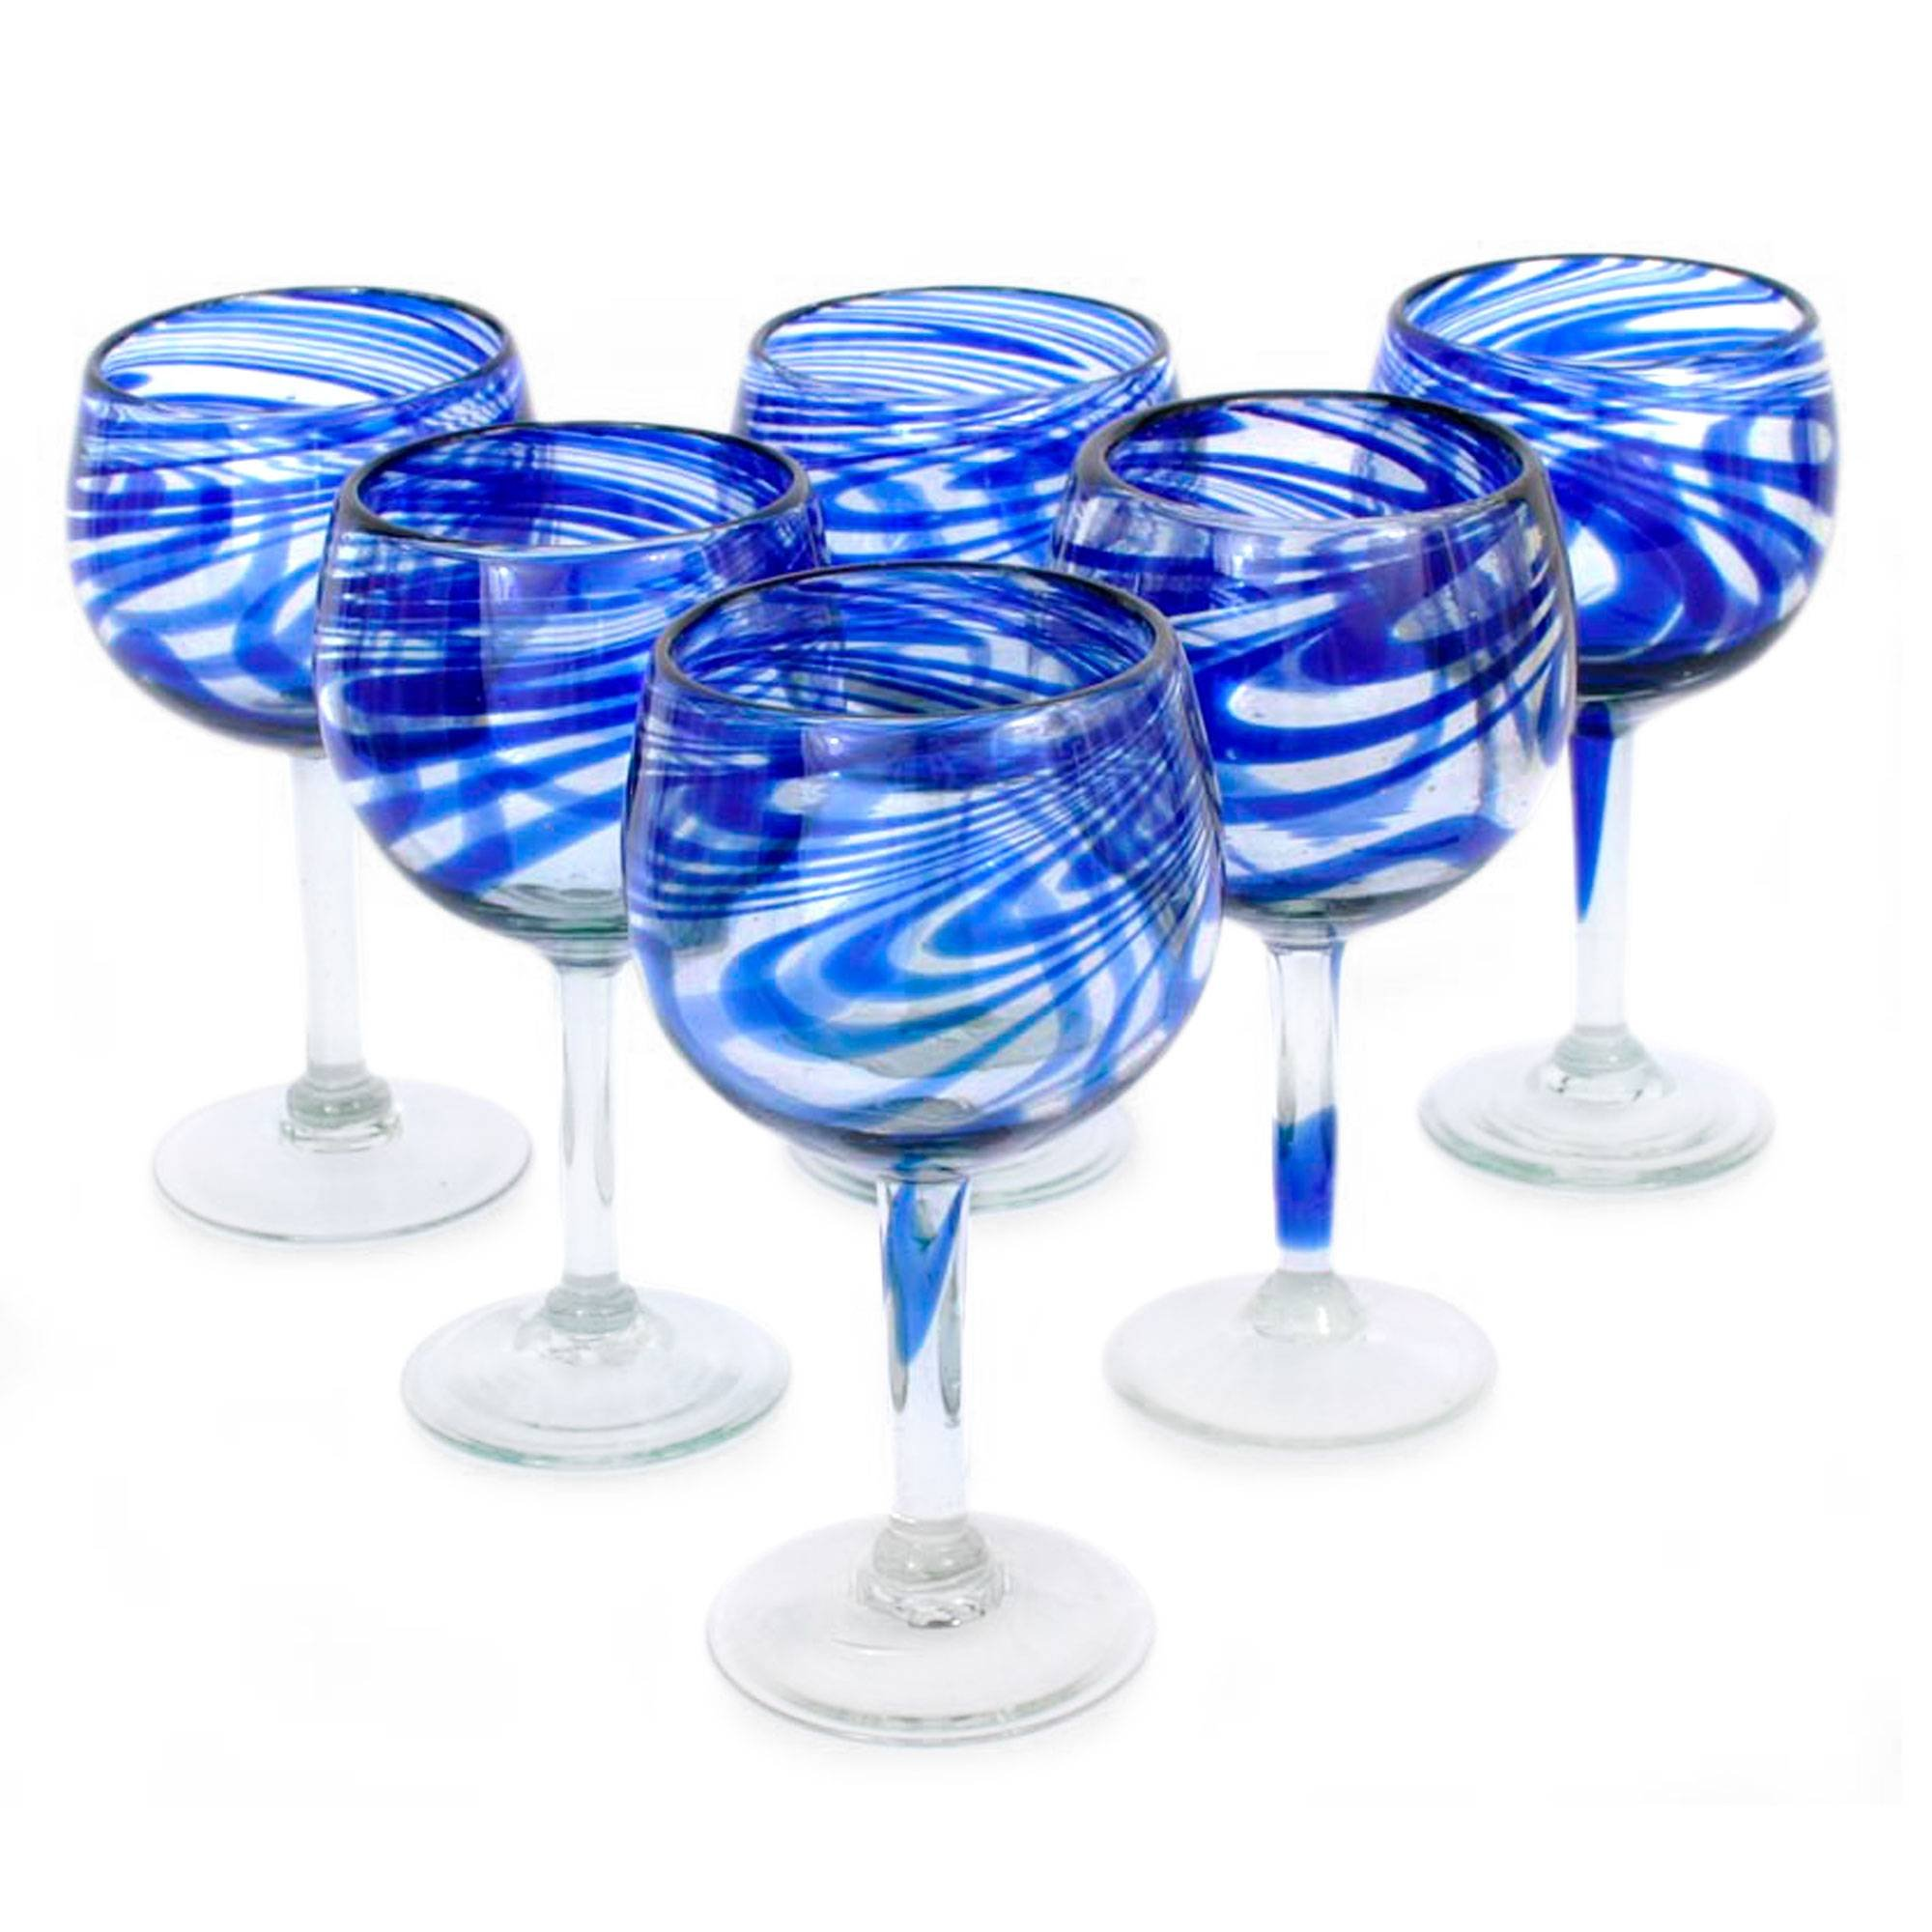 NOVICA Hand Blown Blue Swirl Recycled Glass Wine Glasses,11 oz 'Blue Ribbon' (large, set of 6)